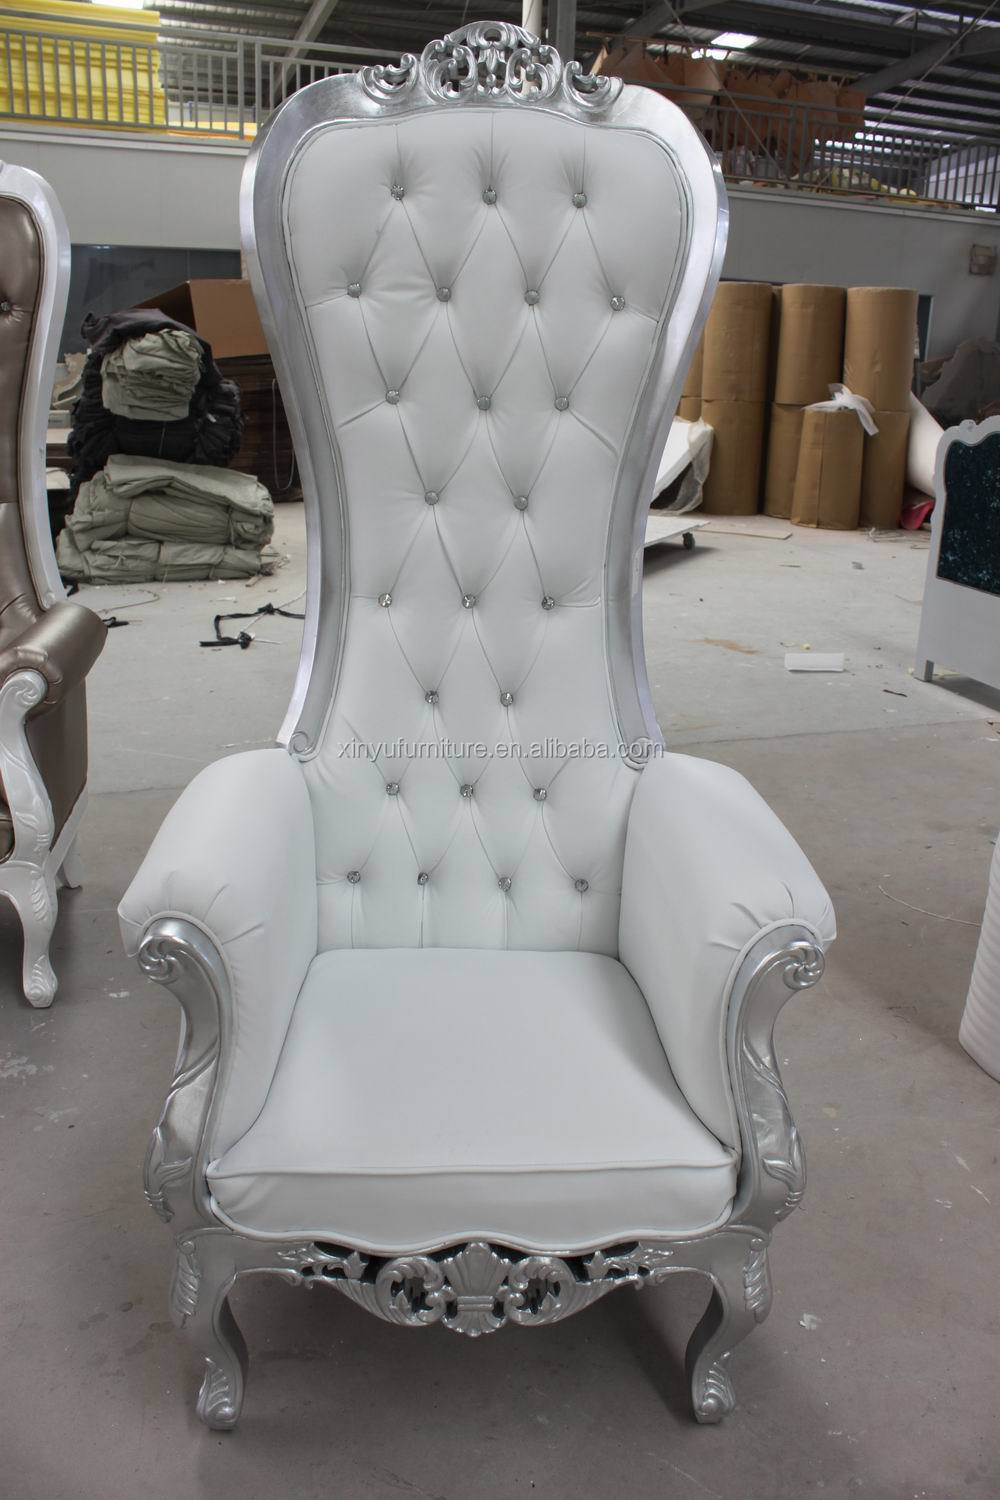 High Back Wedding ChairsHome Furniture ChinaLuxury